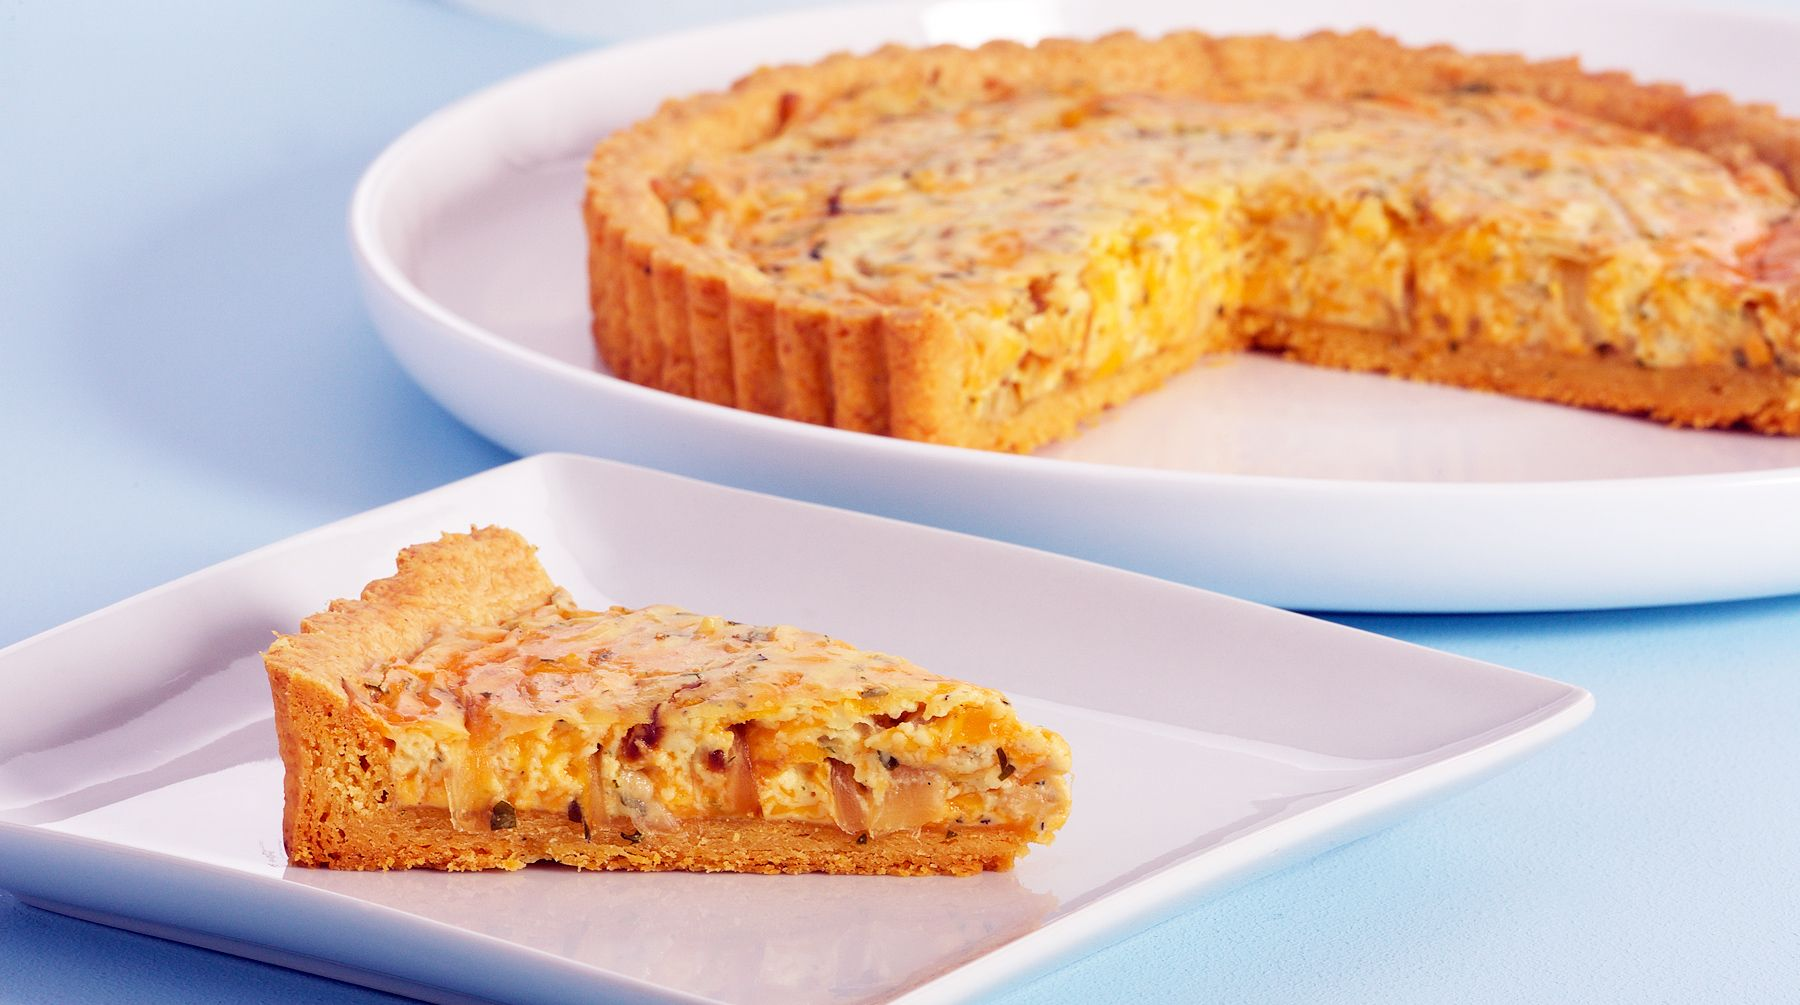 Savor this quick and easy cake recipe by anna olson from bake with try this exciting cheddar shortbread cheesecake recipe of anna olson from food network kitchen forumfinder Image collections